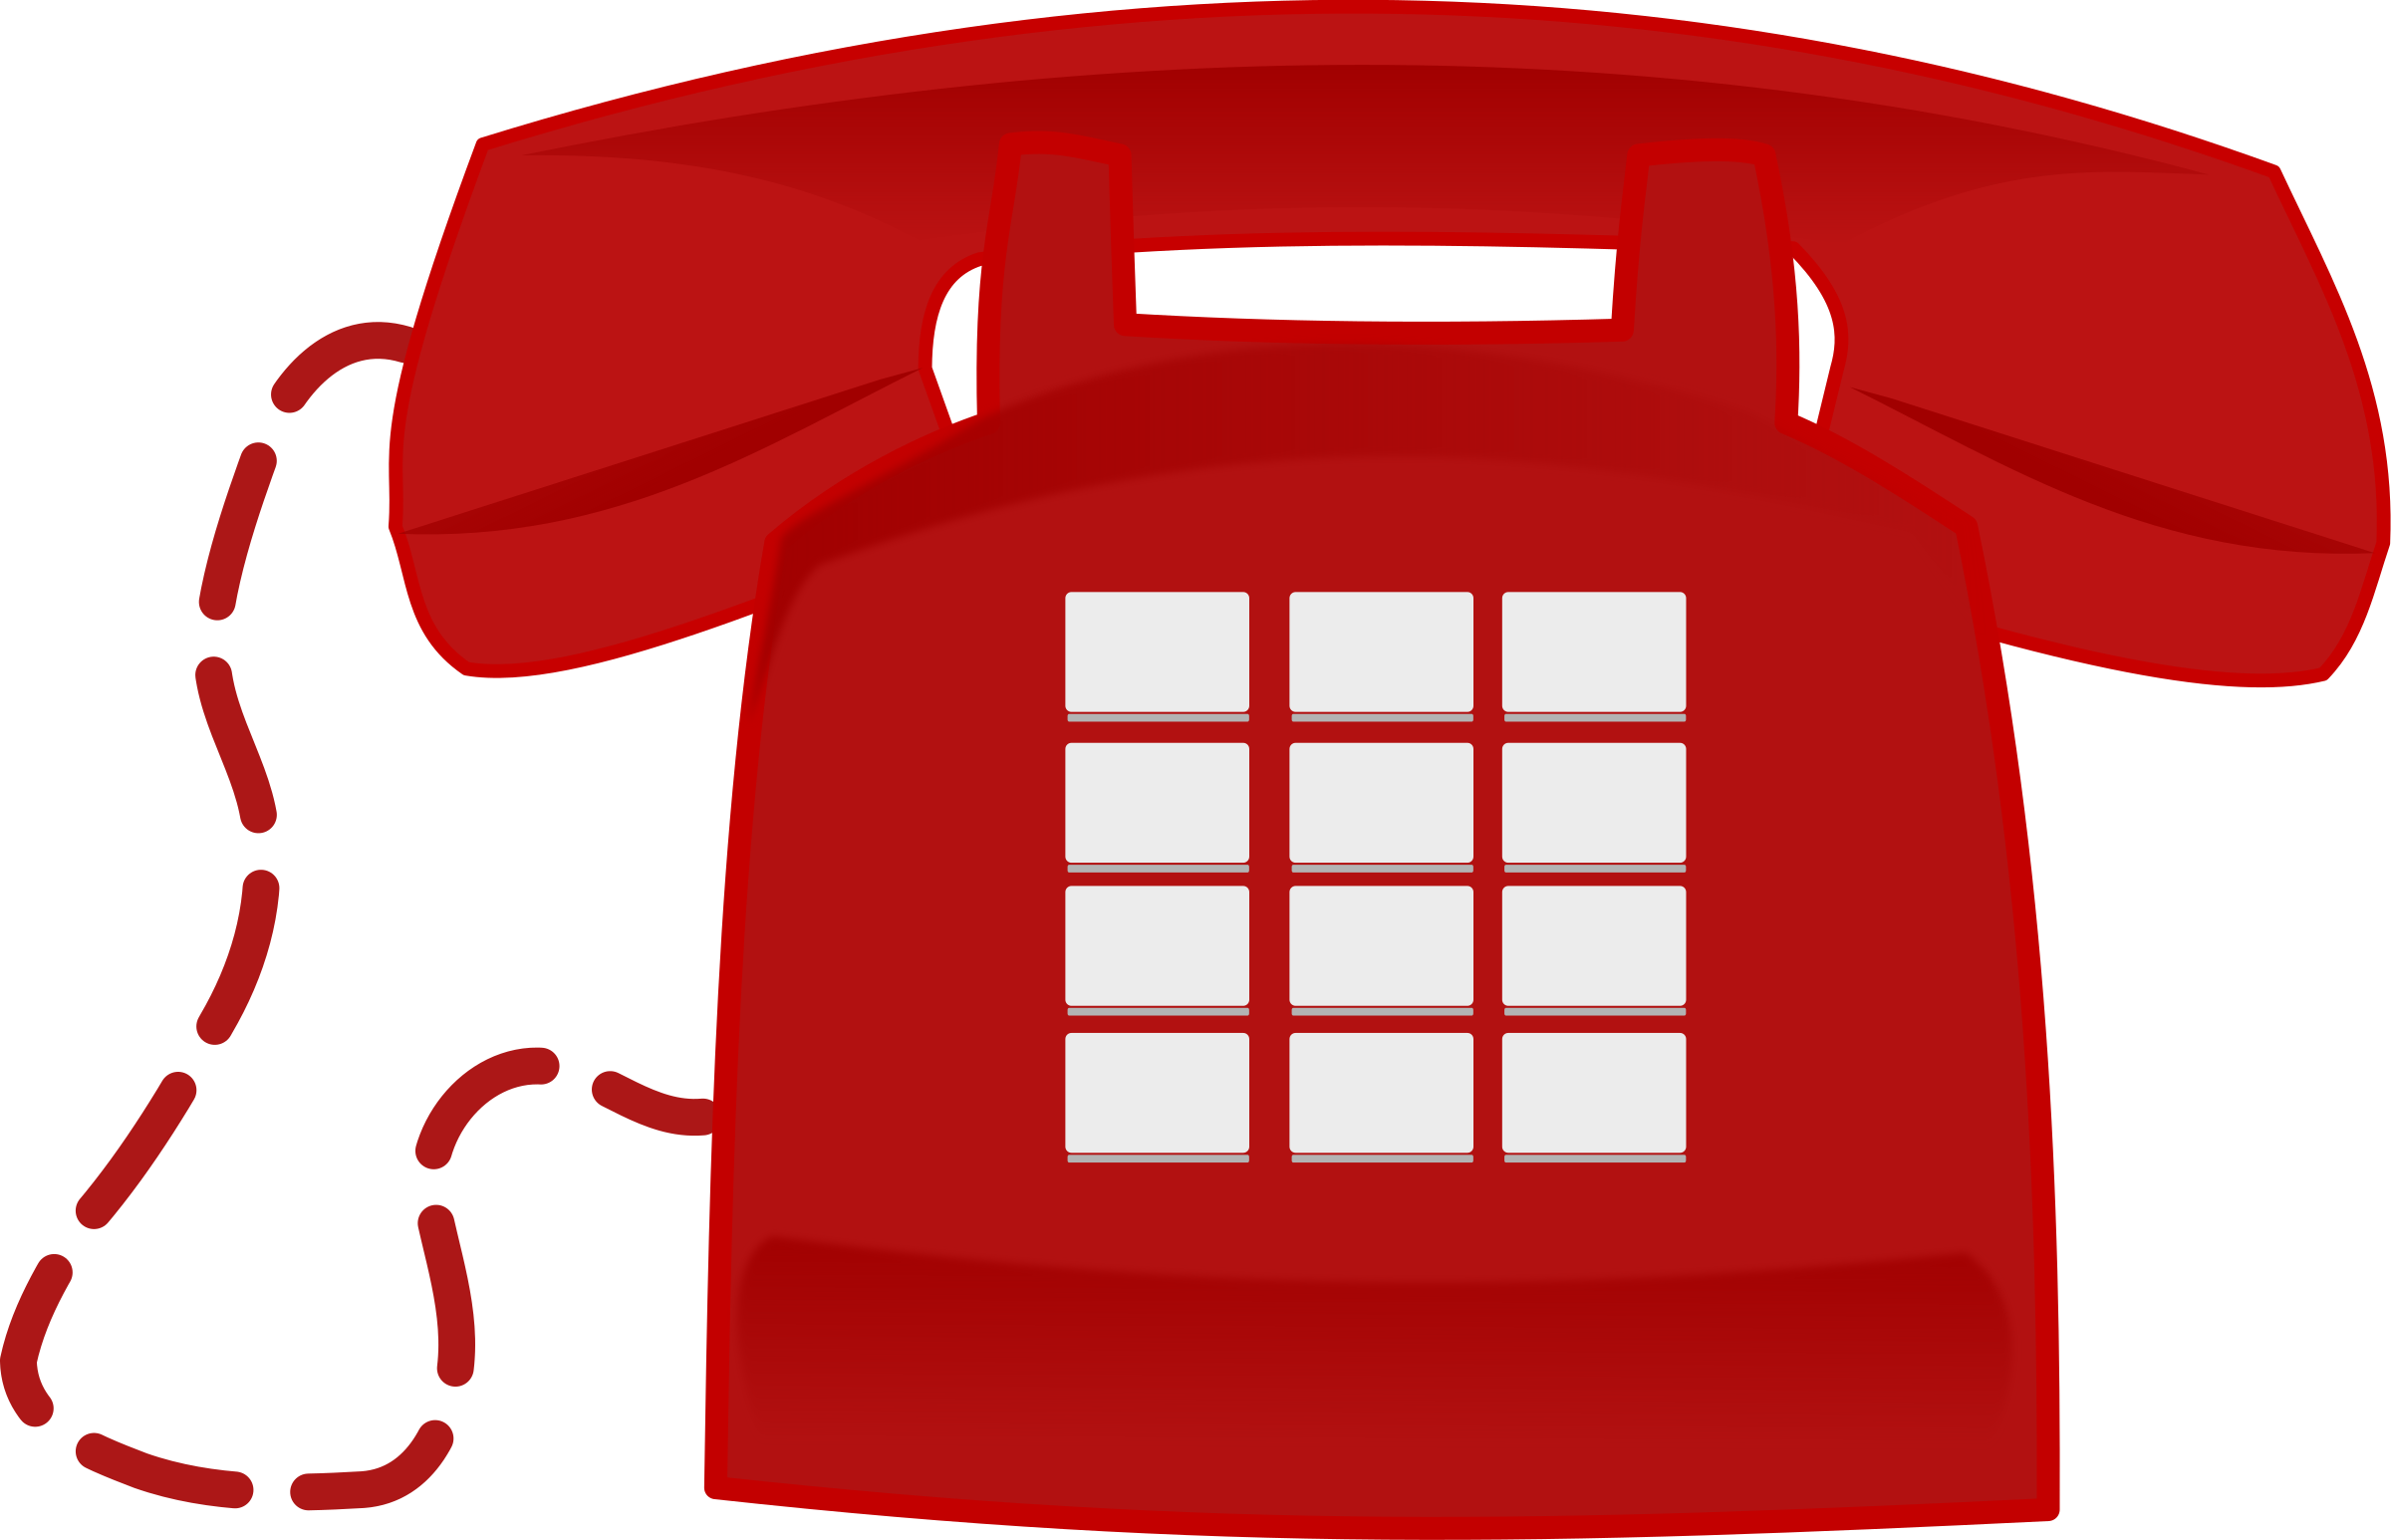 2400x1546 Telephone Clipart Red Telephone